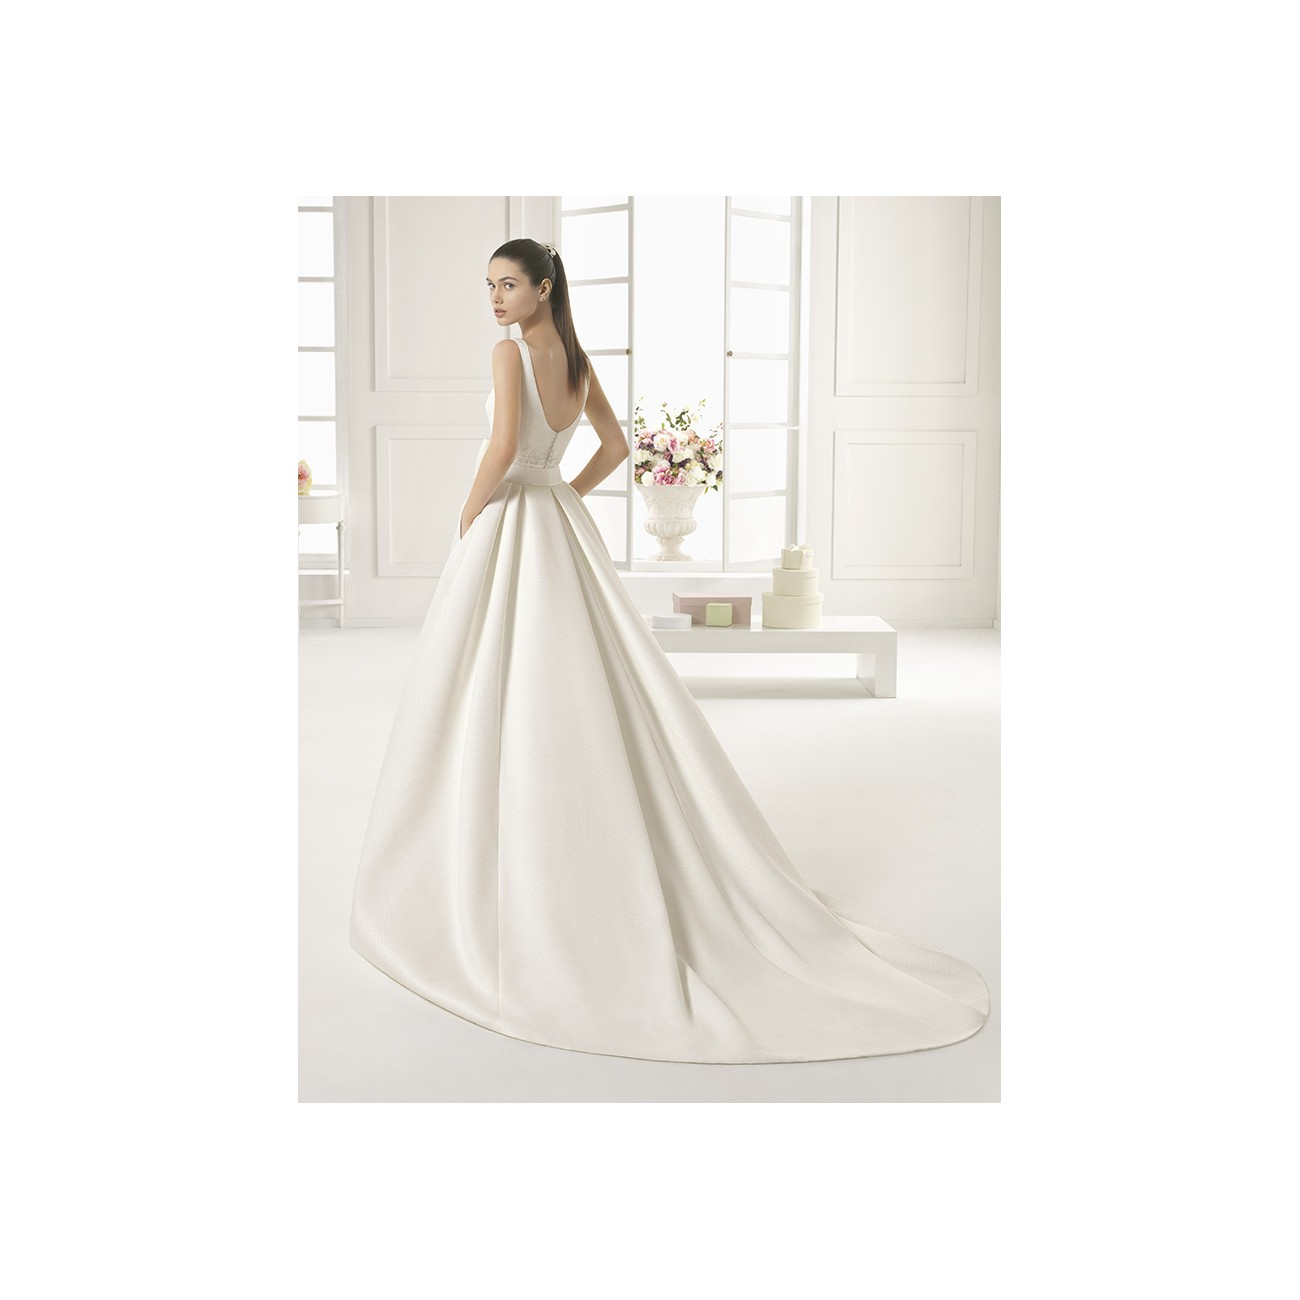 Outlet 136 - abito da sposa 2016 Outlet Collection - Le Spose di Milano eba489c6885